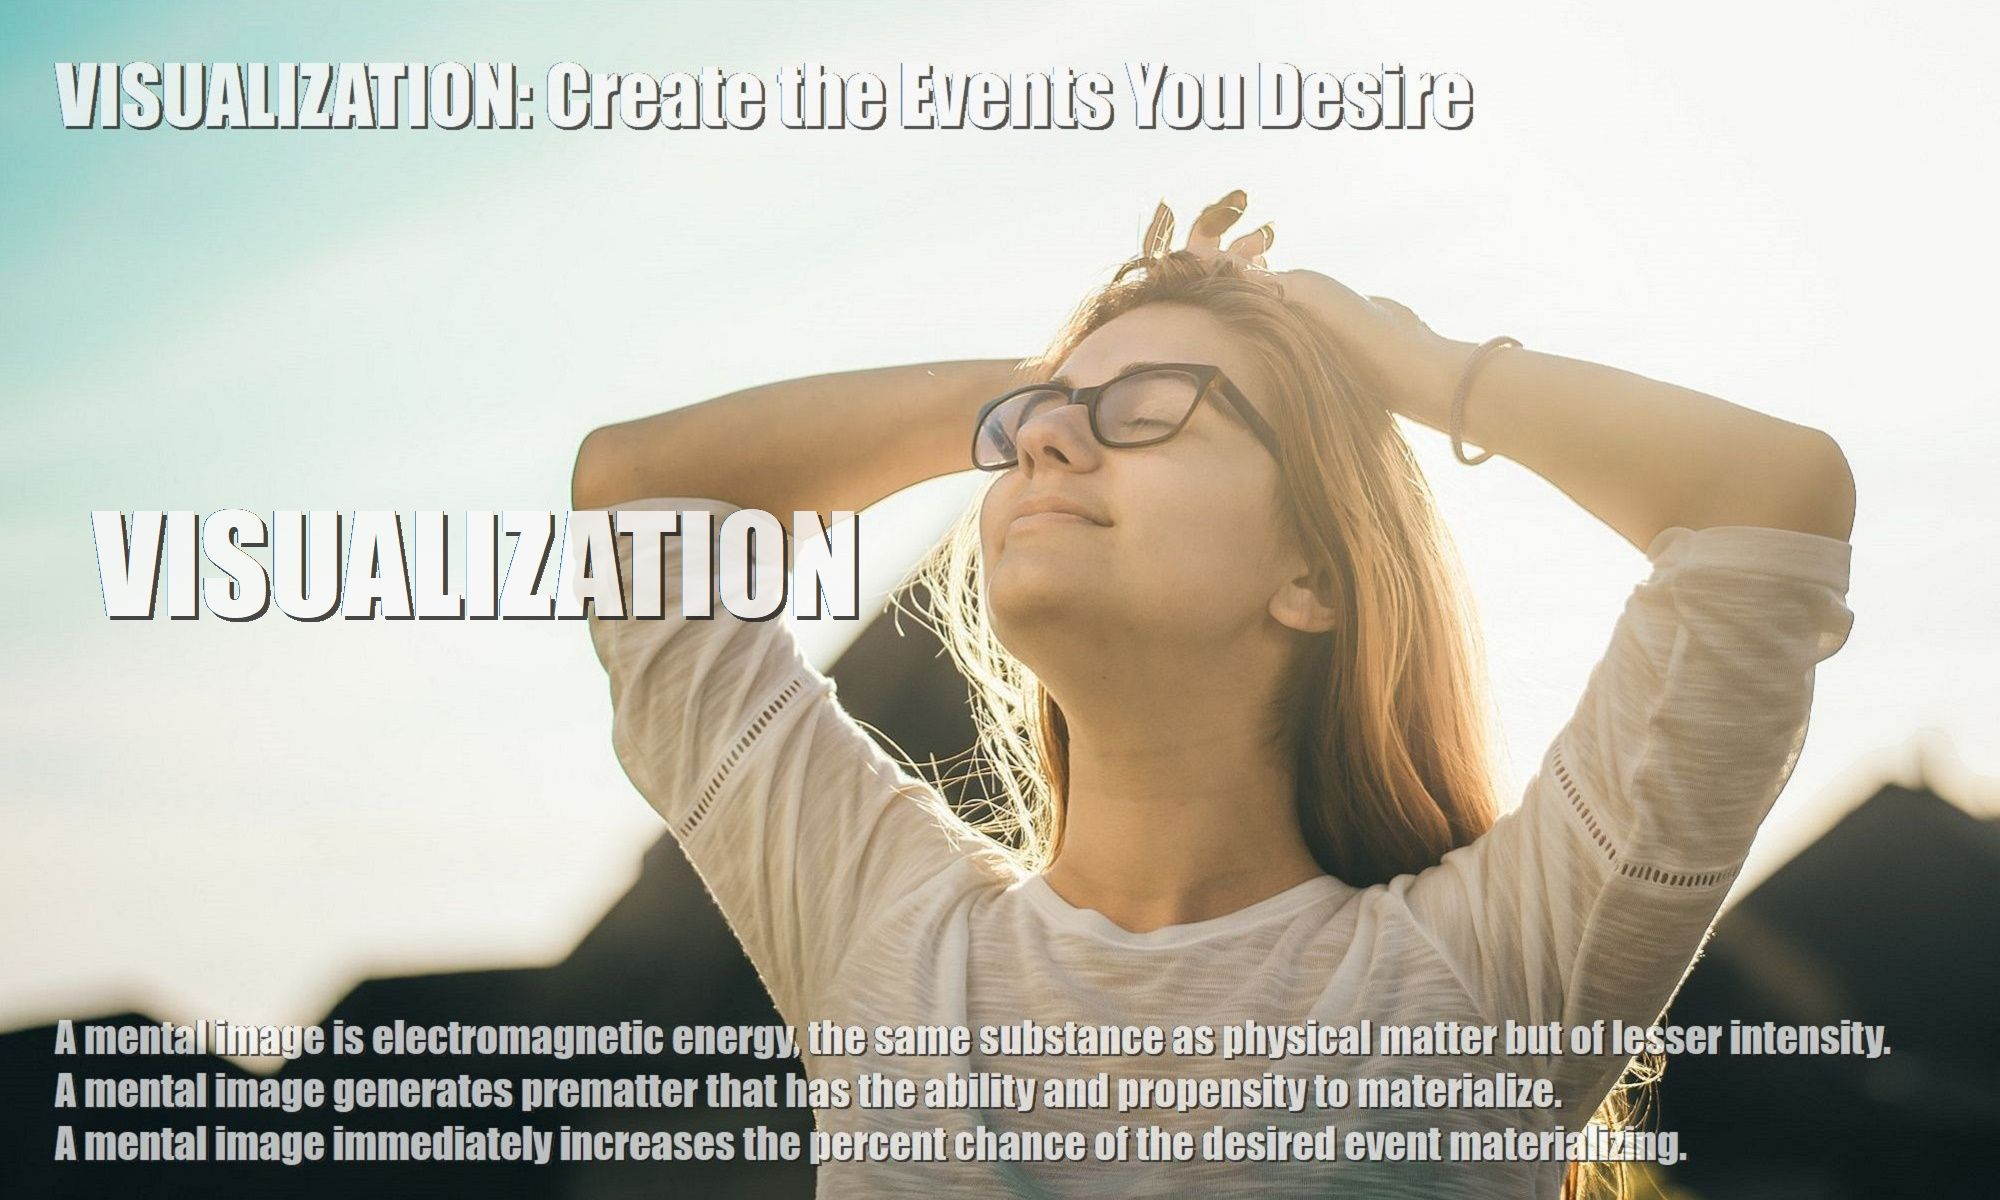 How-to-use-visualization-magic-imagination-to-materialize-events-b-2000